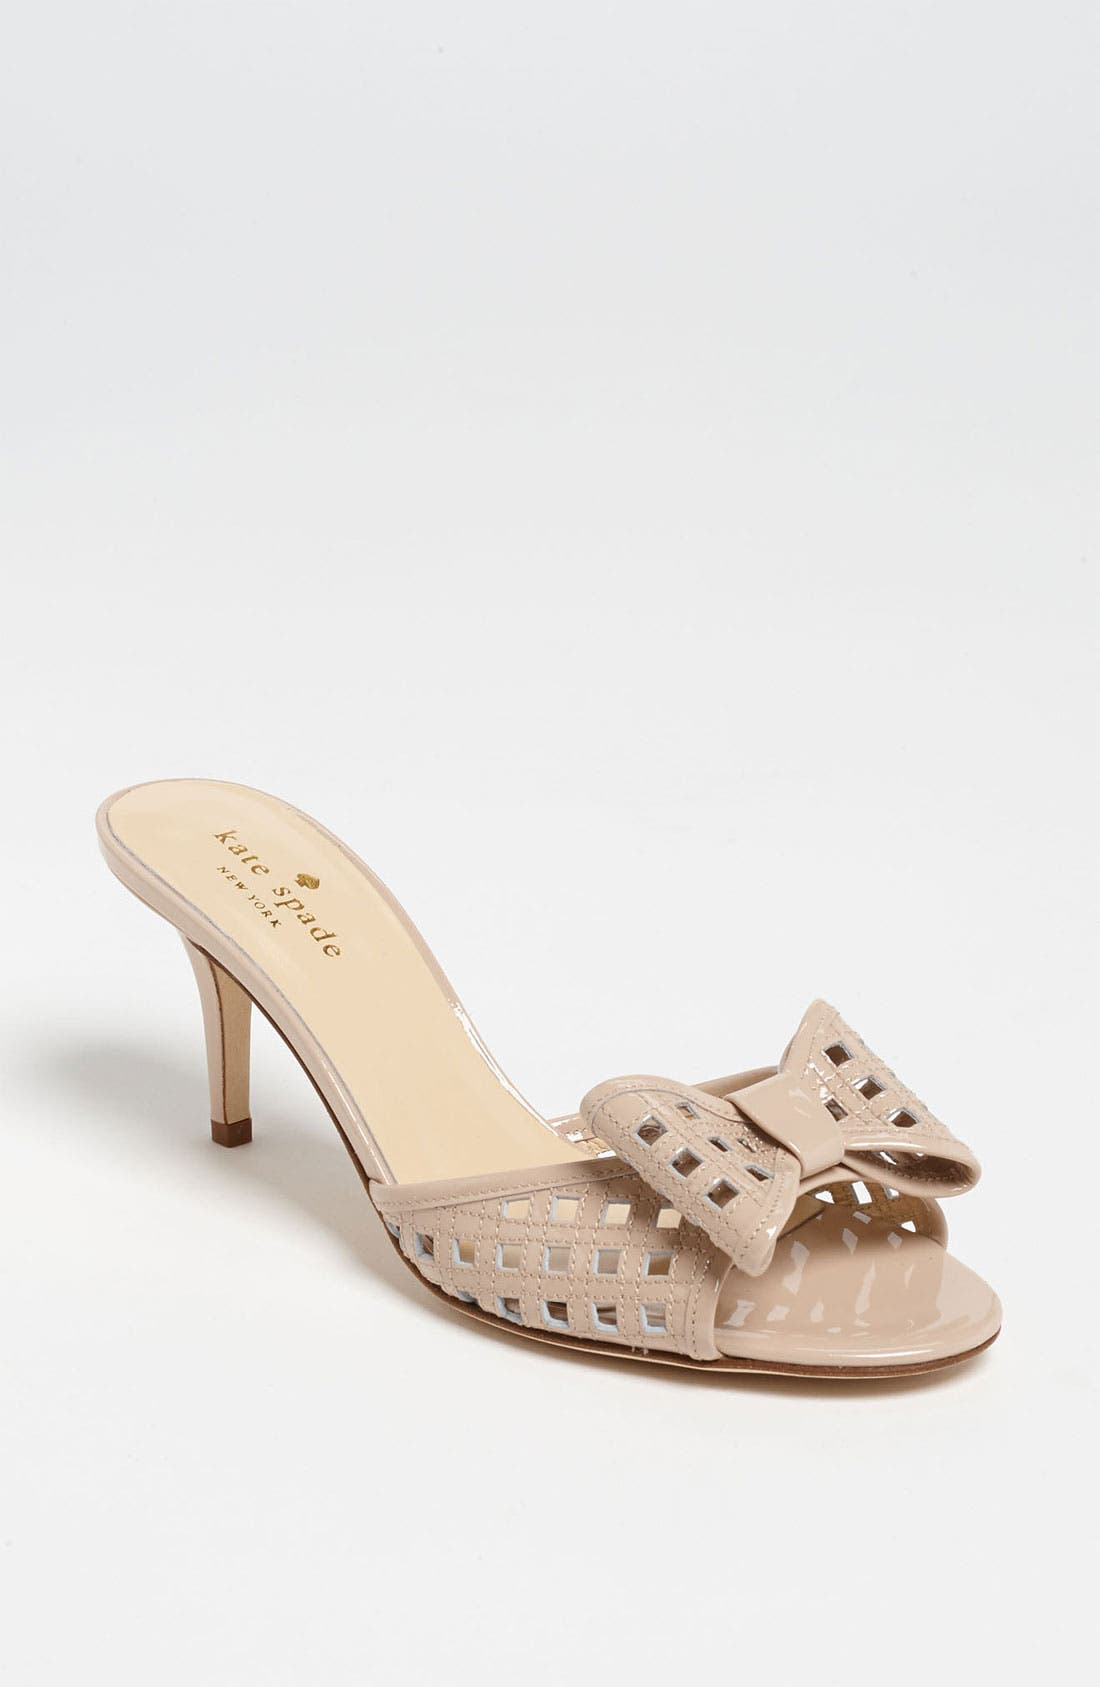 Alternate Image 1 Selected - kate spade new york 'mailyn' sandal